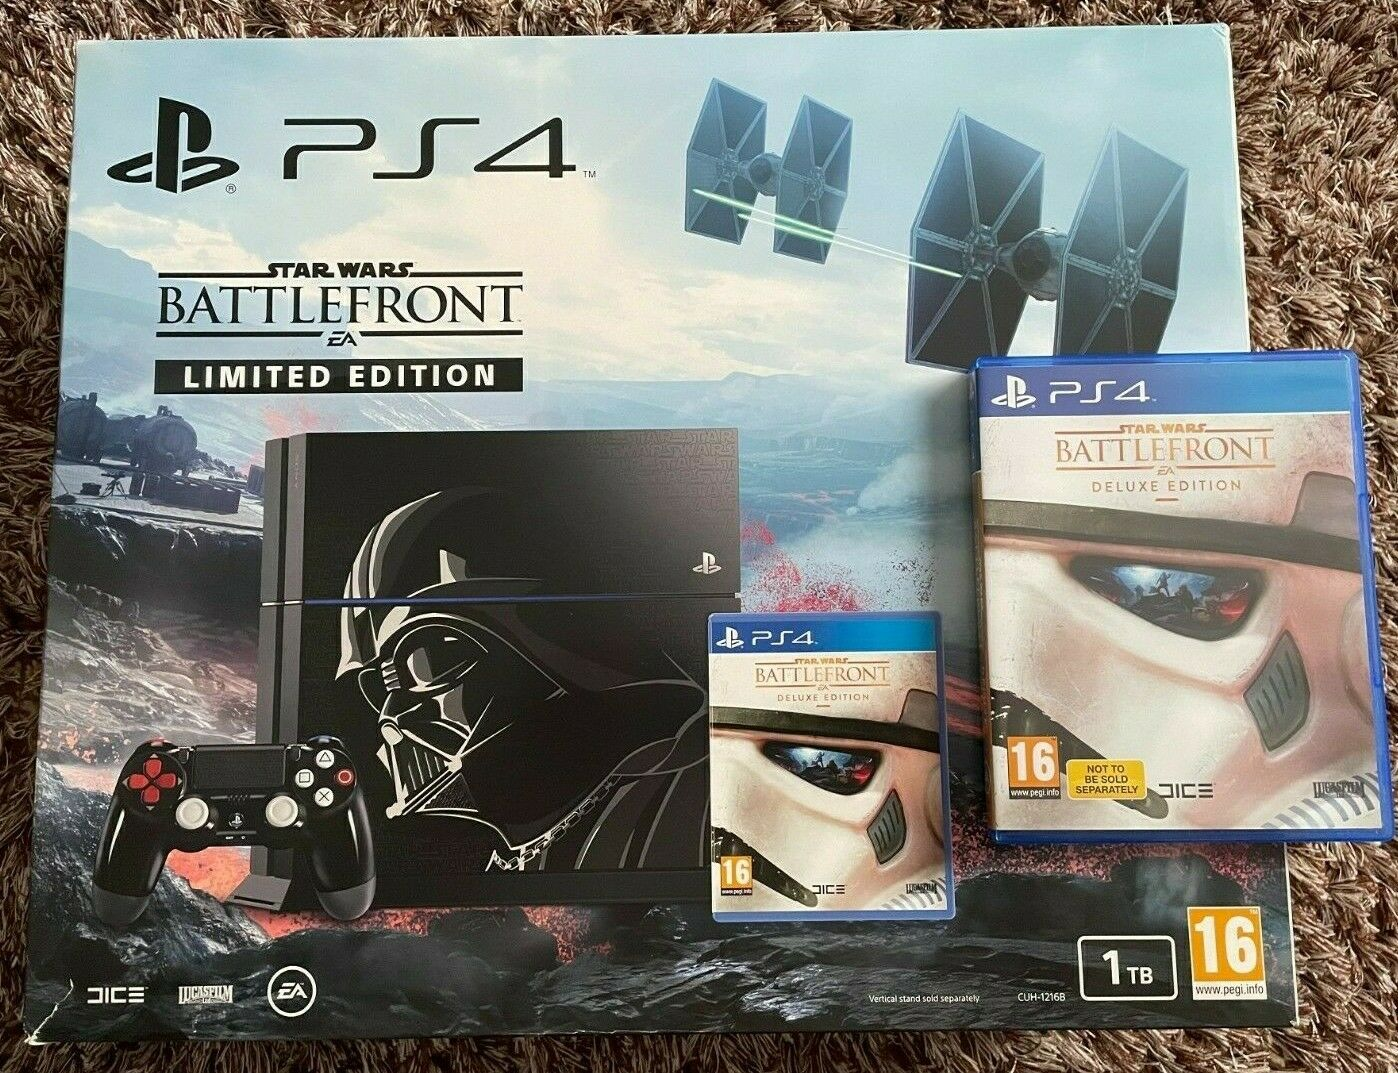 Sony PlayStation 4 Console Star Wars Battlefront Limited Edition 1TB Used